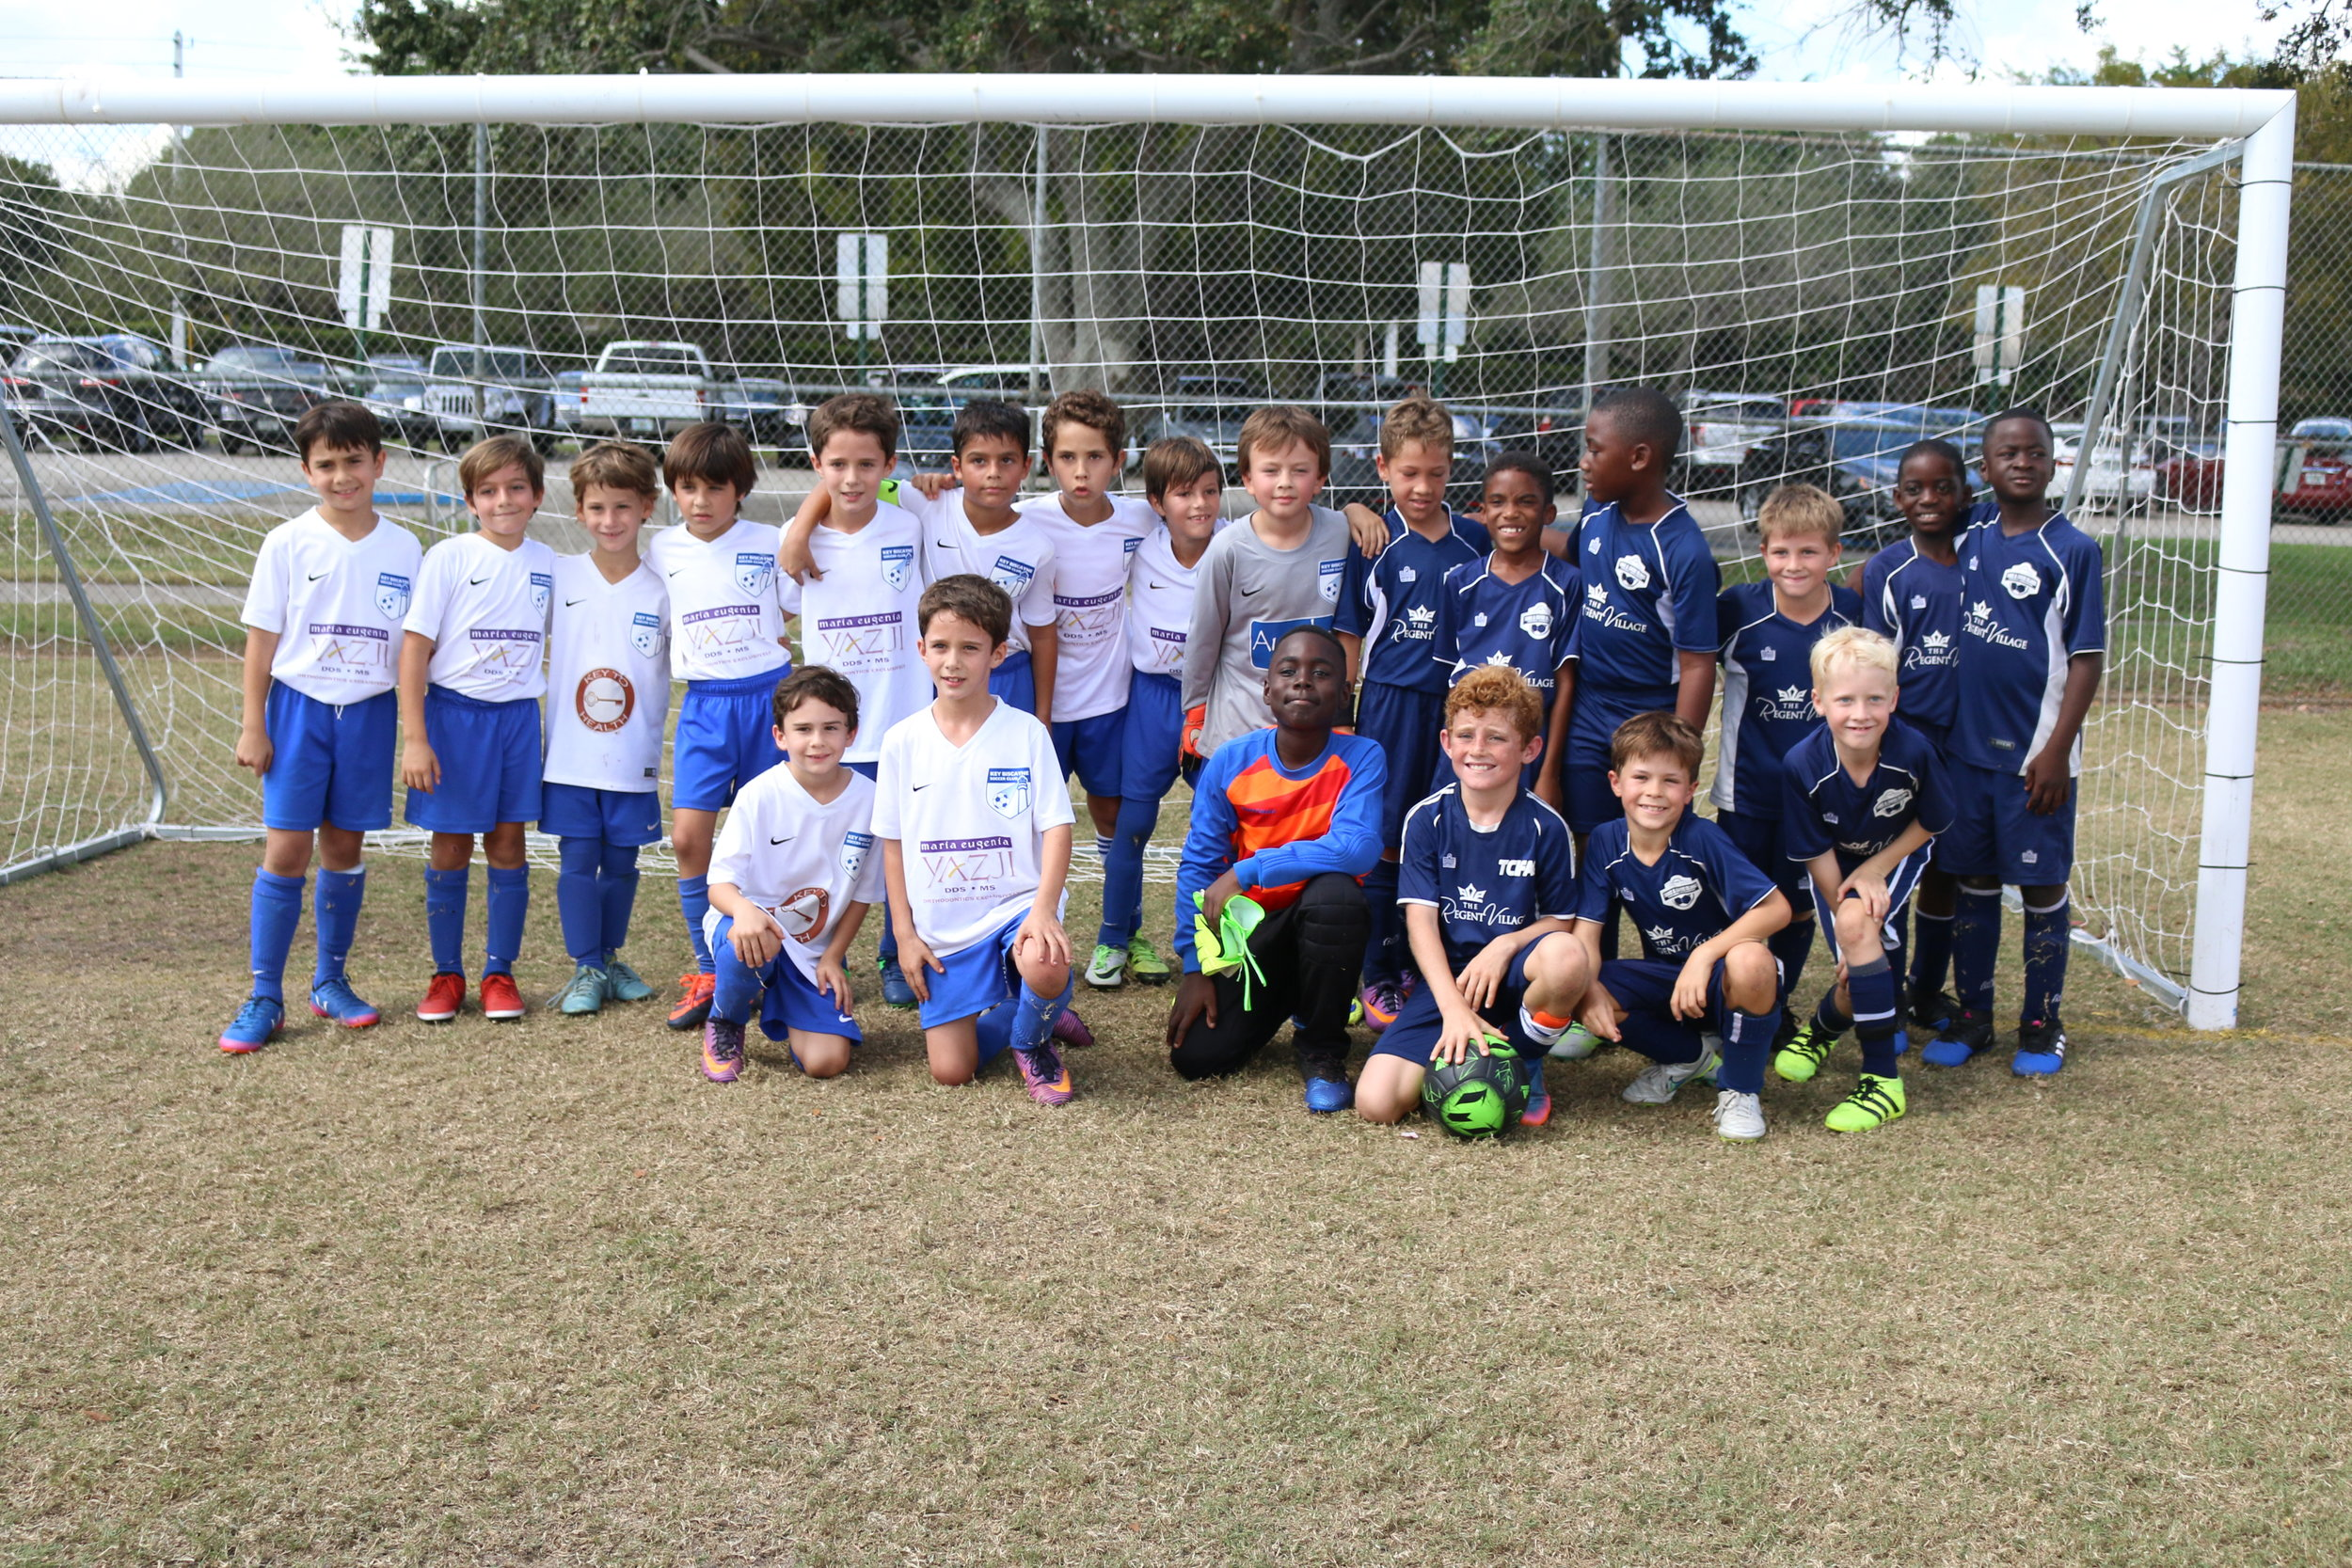 Boys Under 9 Team at Weston Cup